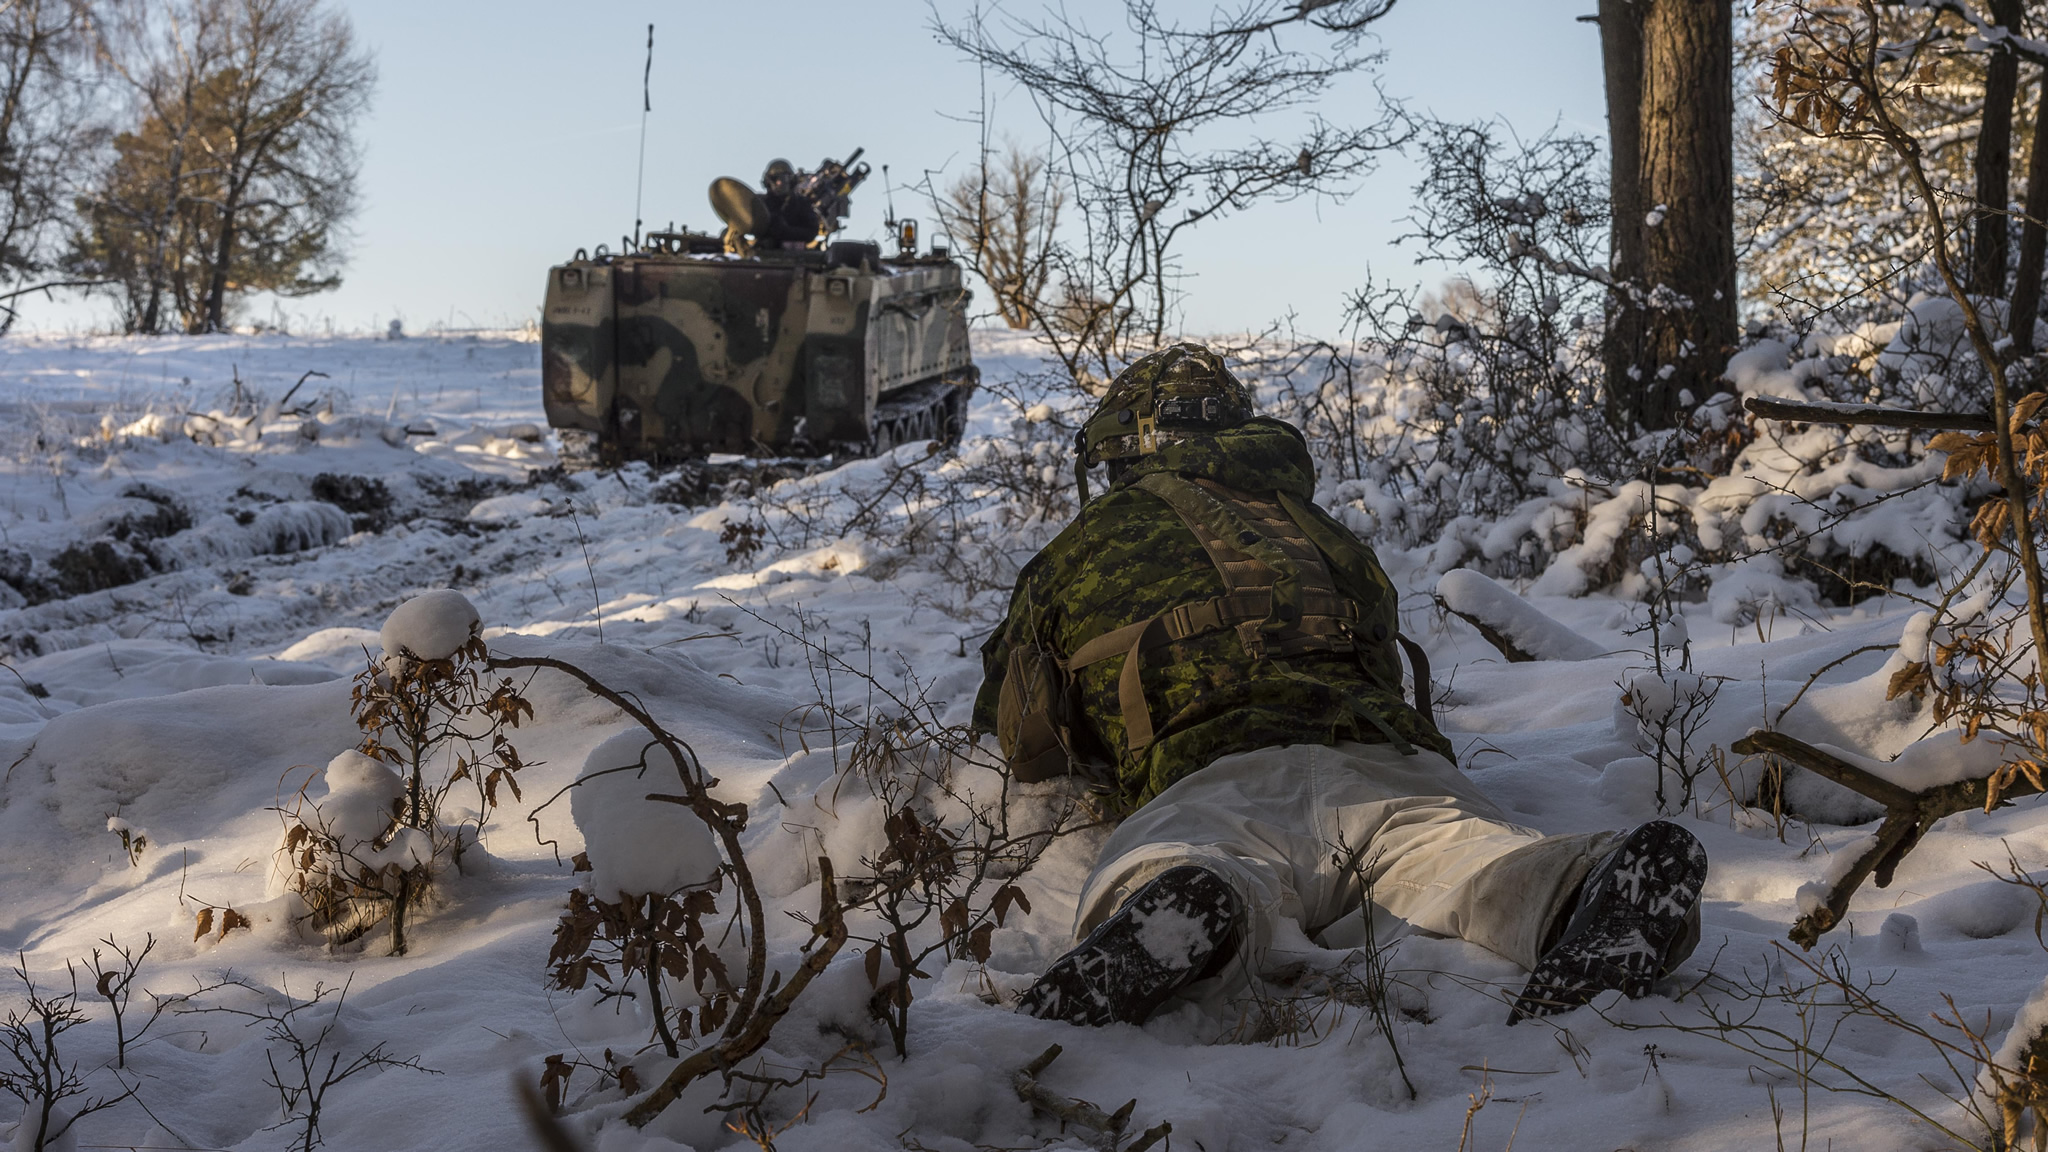 Hohenfels, Germany. 22 January 2016 – A Canadian Armed Forces member lies in the prone position while doing a sweep of the area during Exercise ALLIED SPIRIT IV at the Joint Multinational Readiness Center Training area in Hohenfels, Germany during Operation REASSURANCE. (Photo: Corporal Nathan Moulton